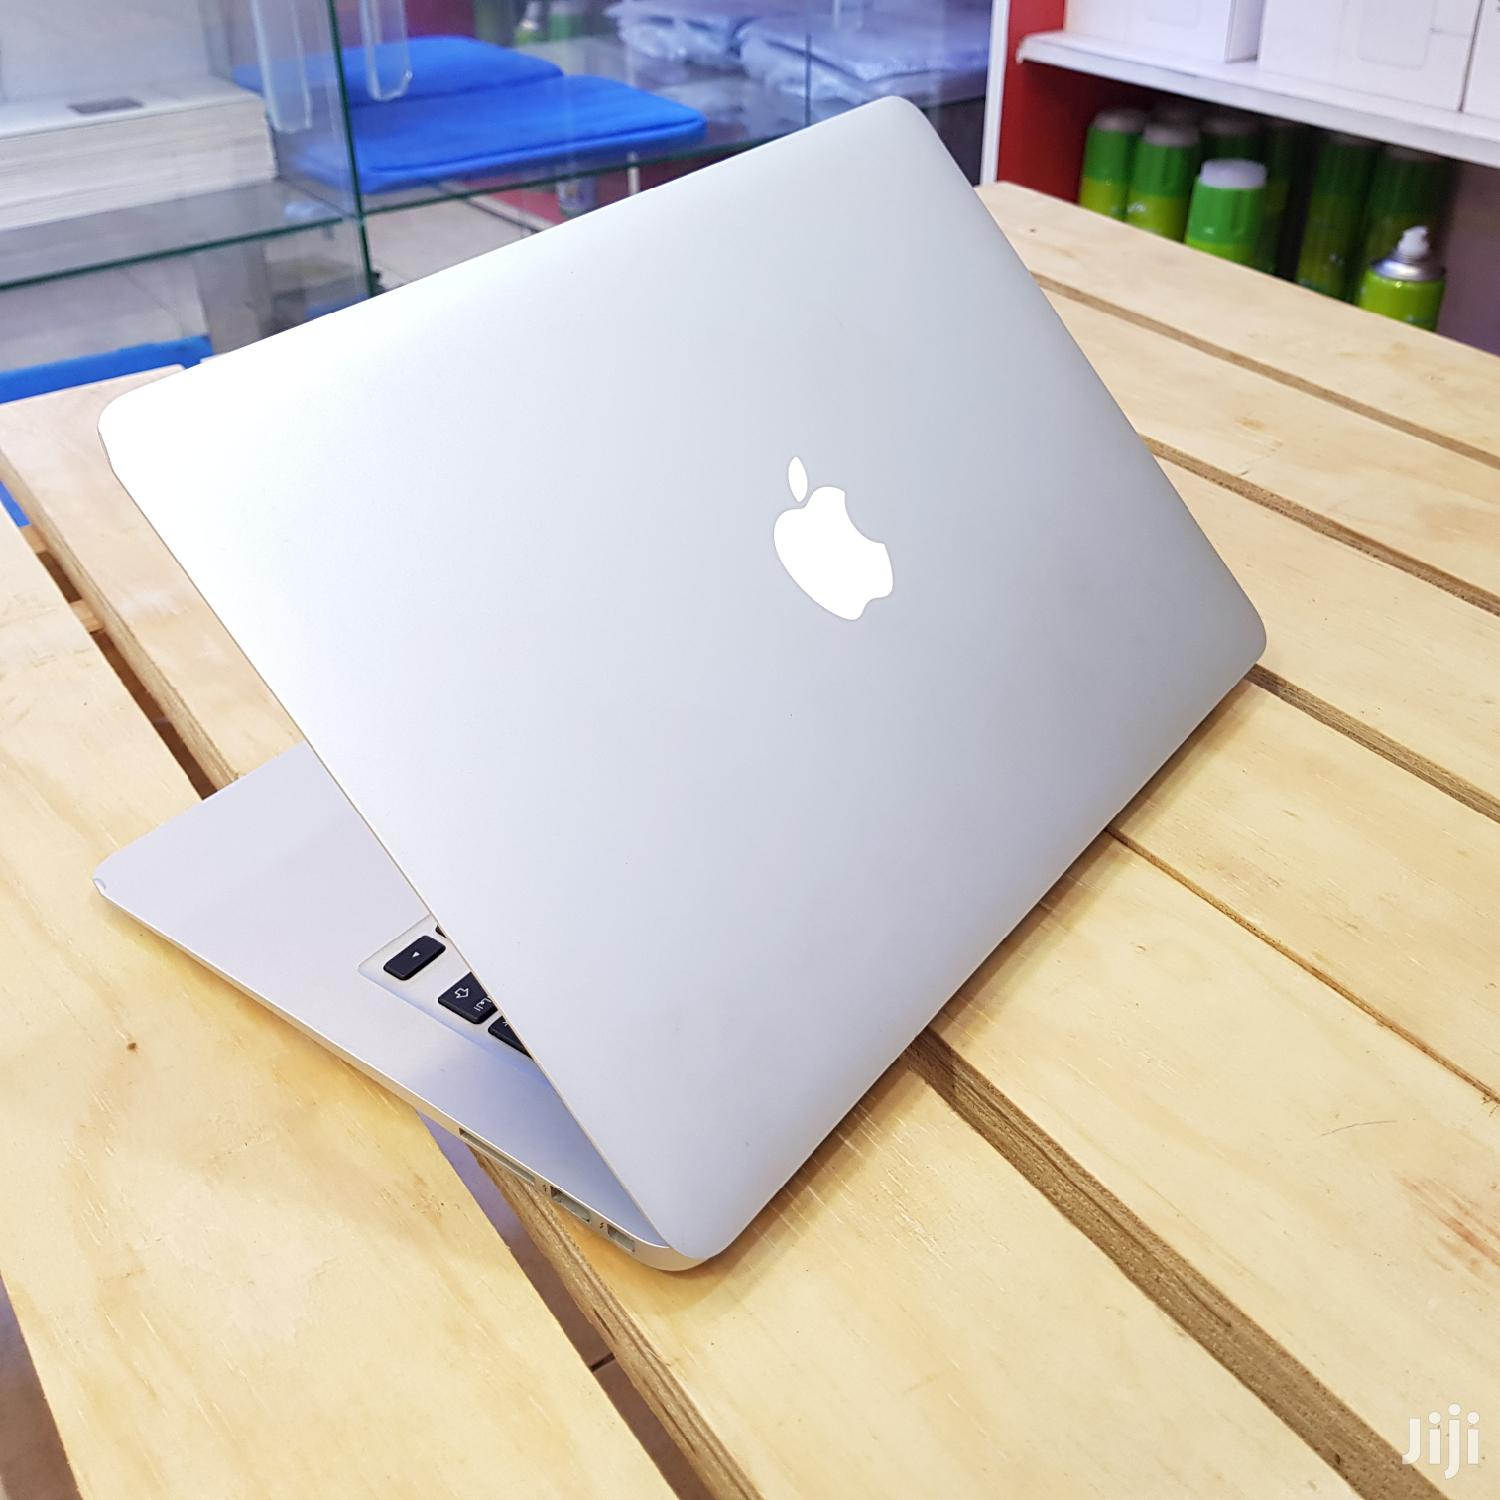 New Apple Macbook Air 13 Inches 128 GB SSD Core I5 4 GB RAM | Laptops & Computers for sale in Kampala, Central Region, Uganda